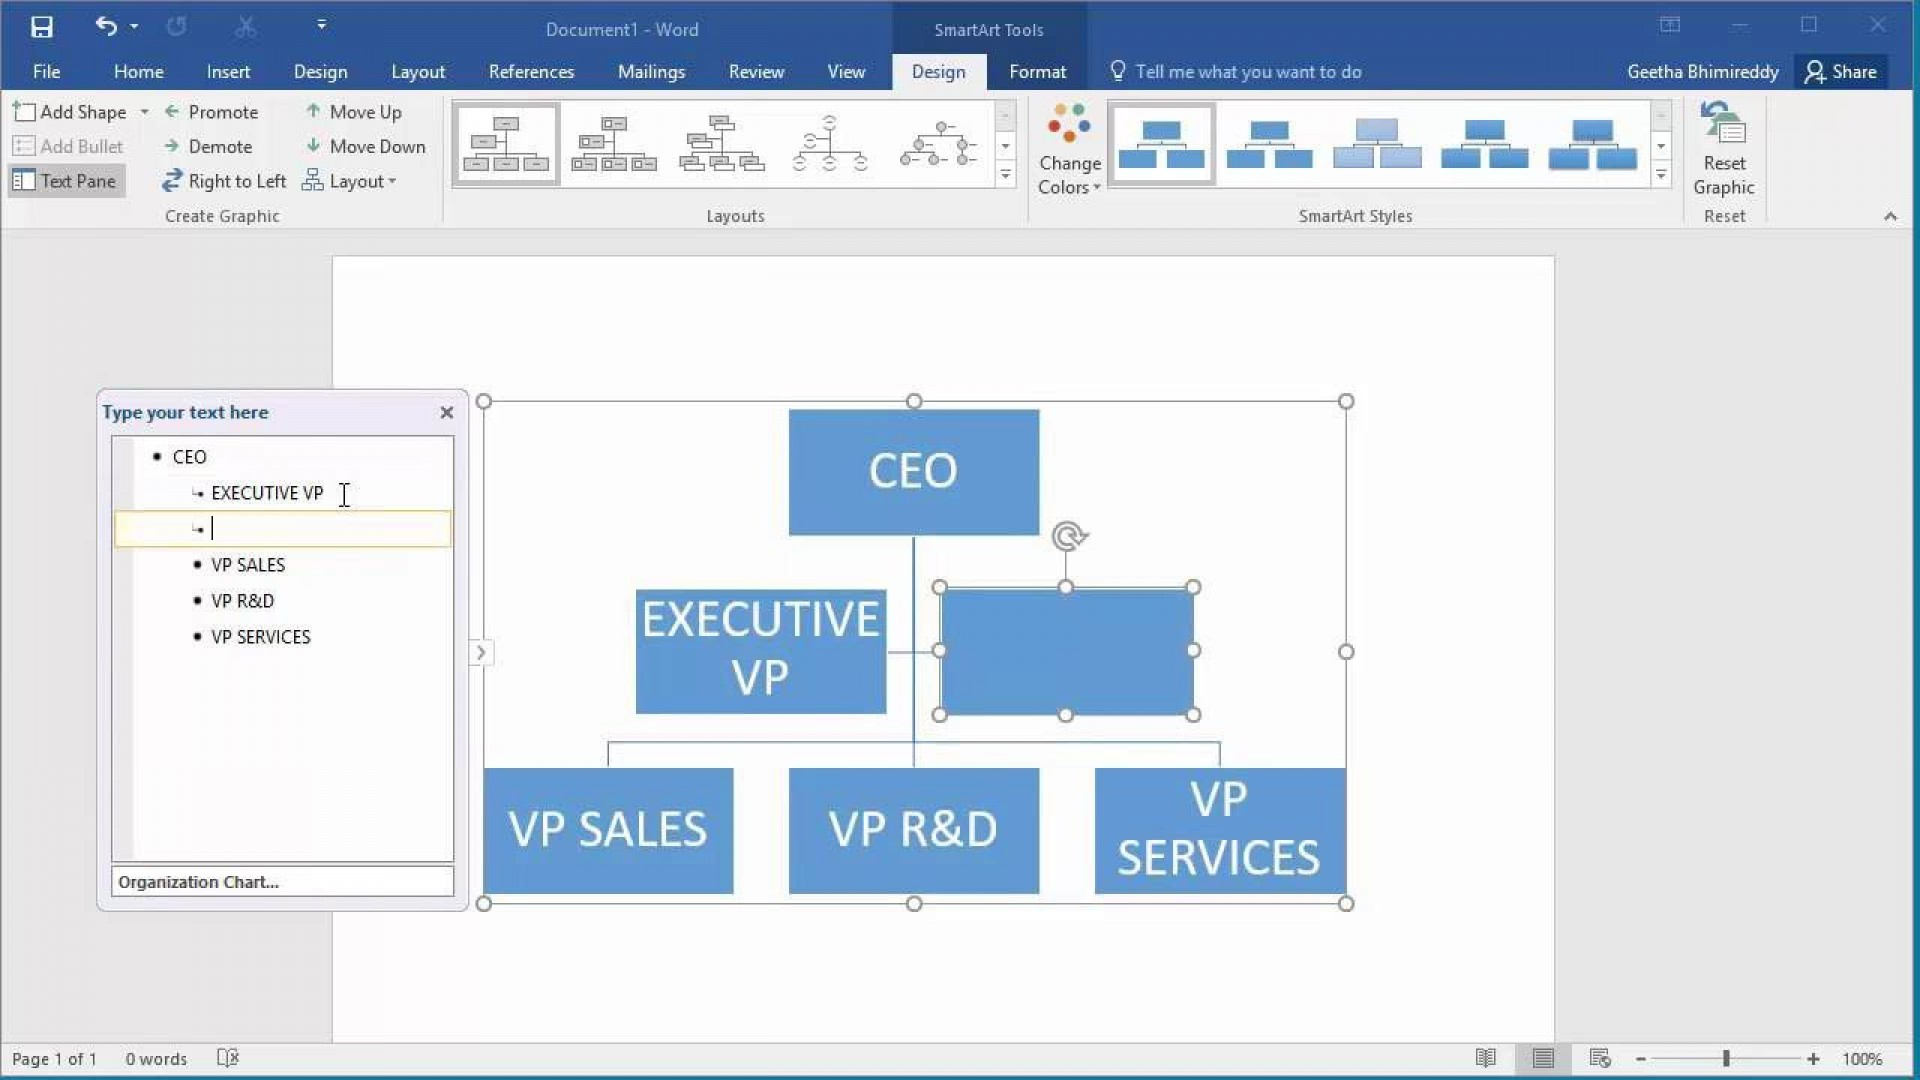 003 Marvelou Microsoft Word Org Chart Template Free Highest Clarity 1920